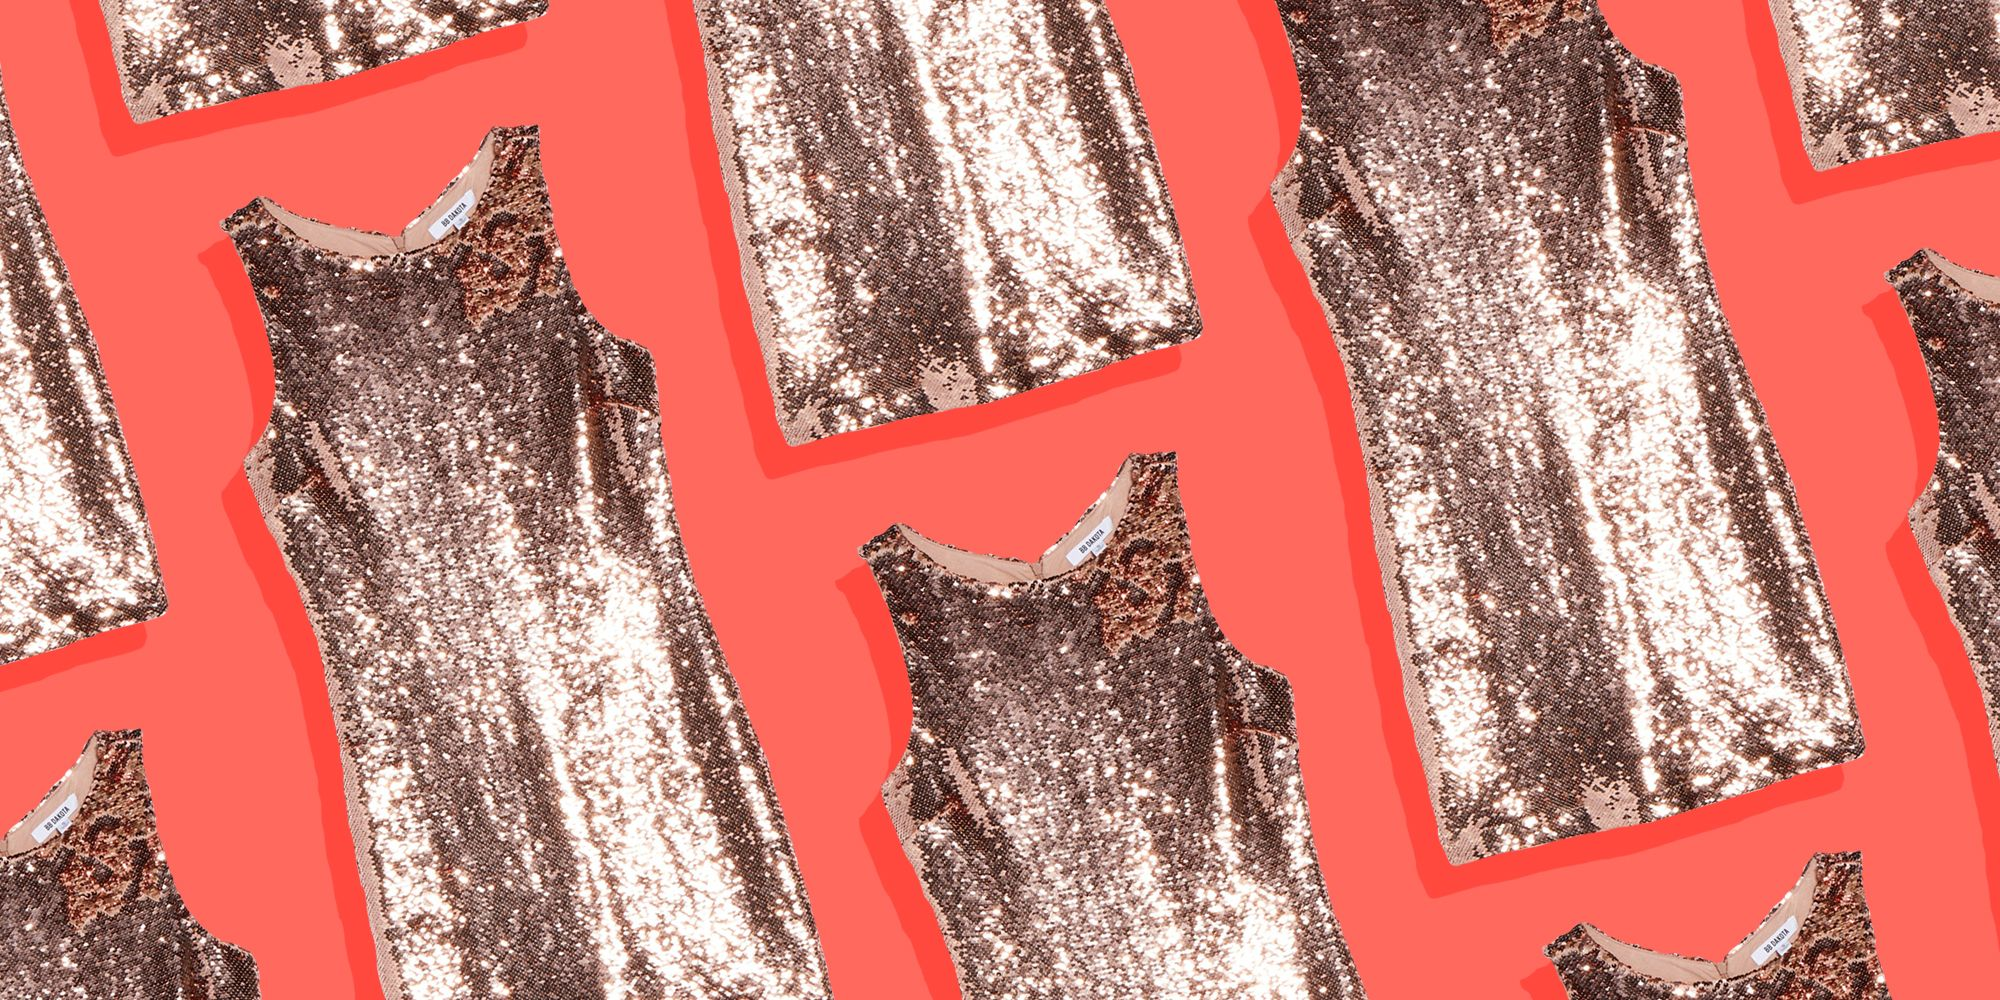 It's Not New Year's Eve Until You Have a Shiny New Party Dress